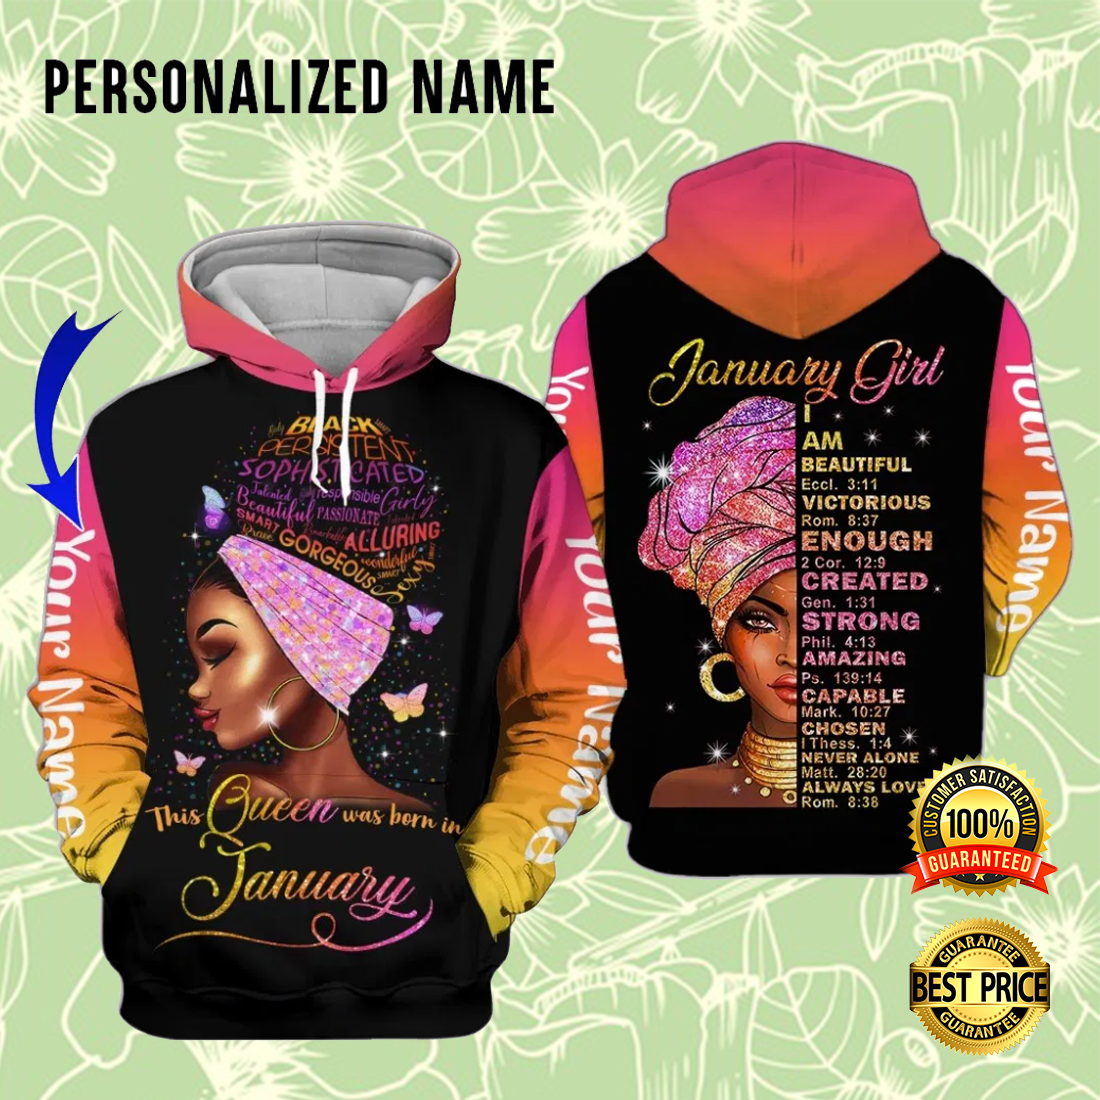 [ Cheapest ] PERSONALIZED JANUARY GIRL I AM BEAUTIFUL VICTORIOUS ENOUGH CREATED ALL OVER PRINTED 3D HOODIE